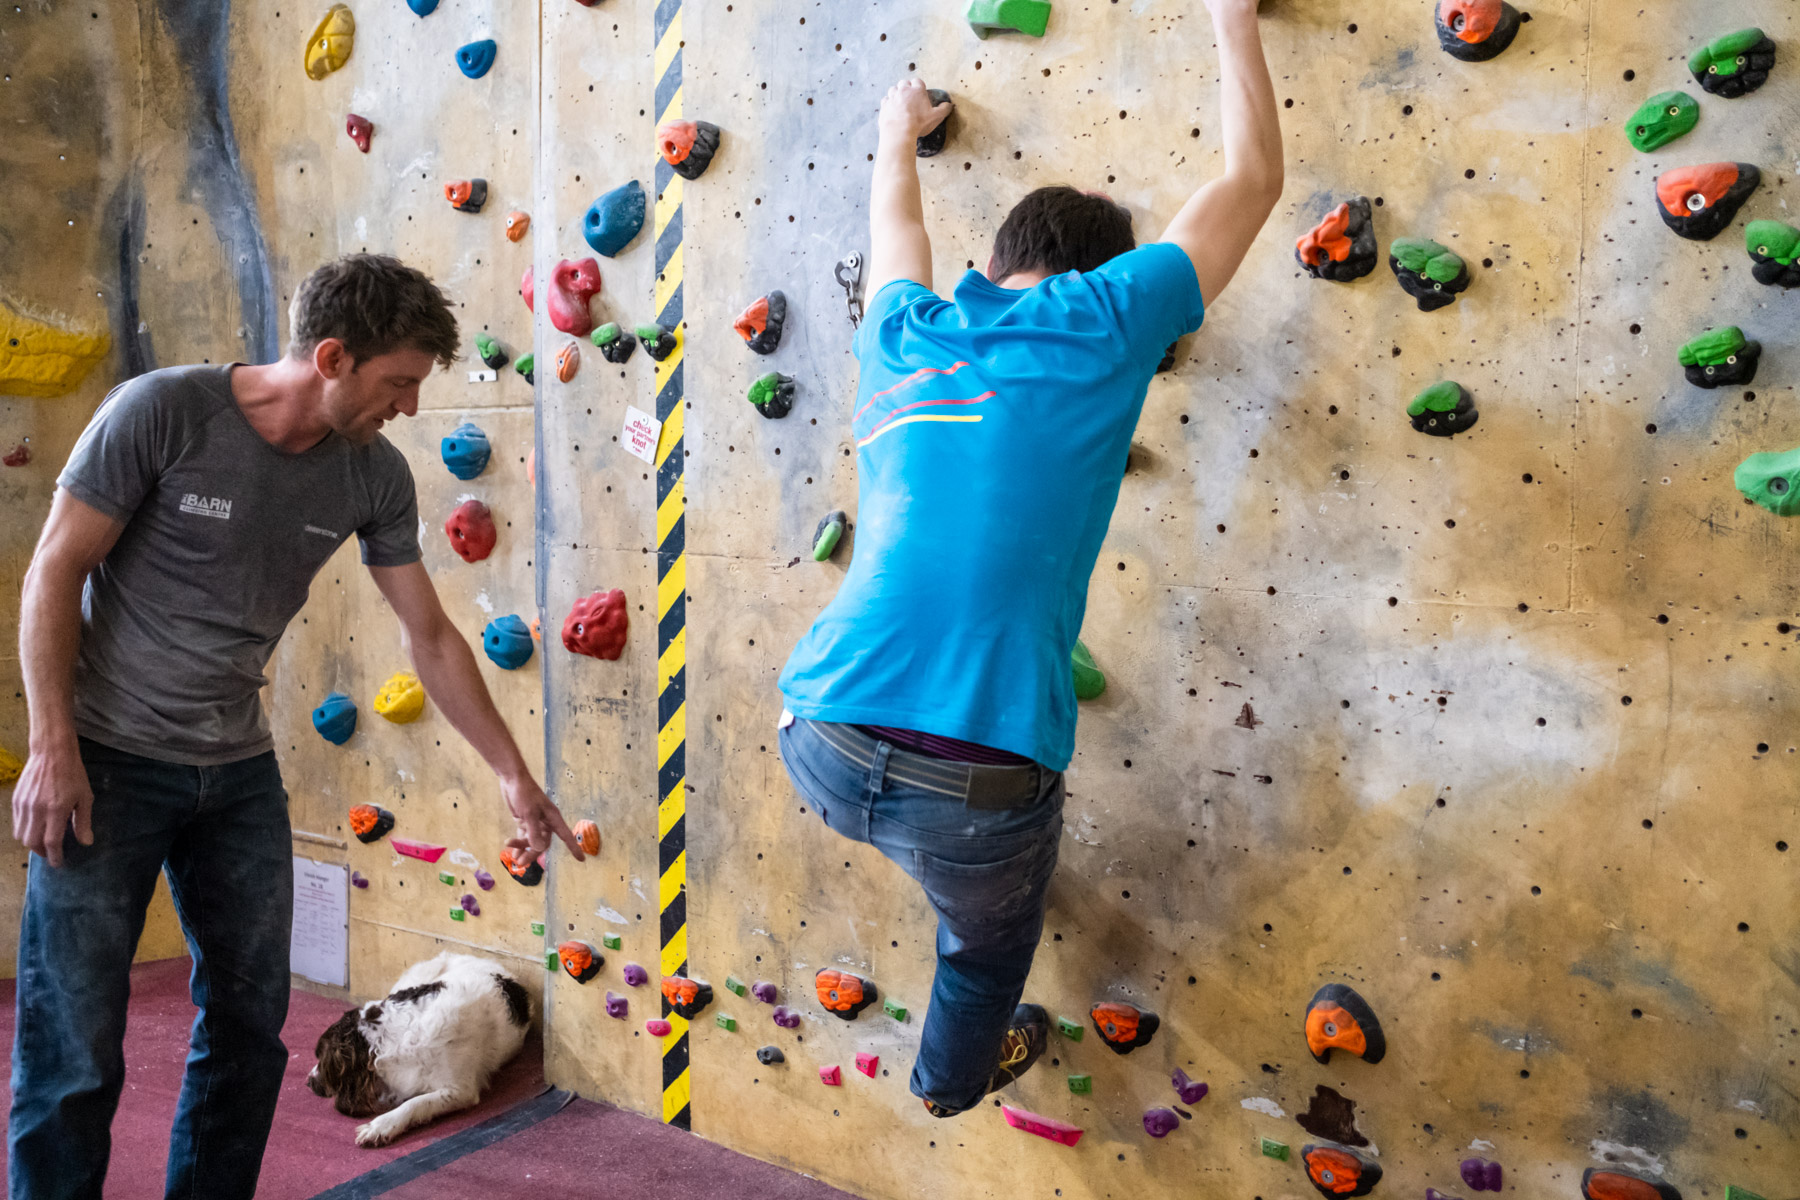 Adult & Youth Coaching - This climbing course is for Adults and Youth who require time with an experienced instructor, who can advise, teach and give personal coaching on any aspect of climbing you require. This course is both for beginners and experienced climbers alike and is completely tailored to your needs.